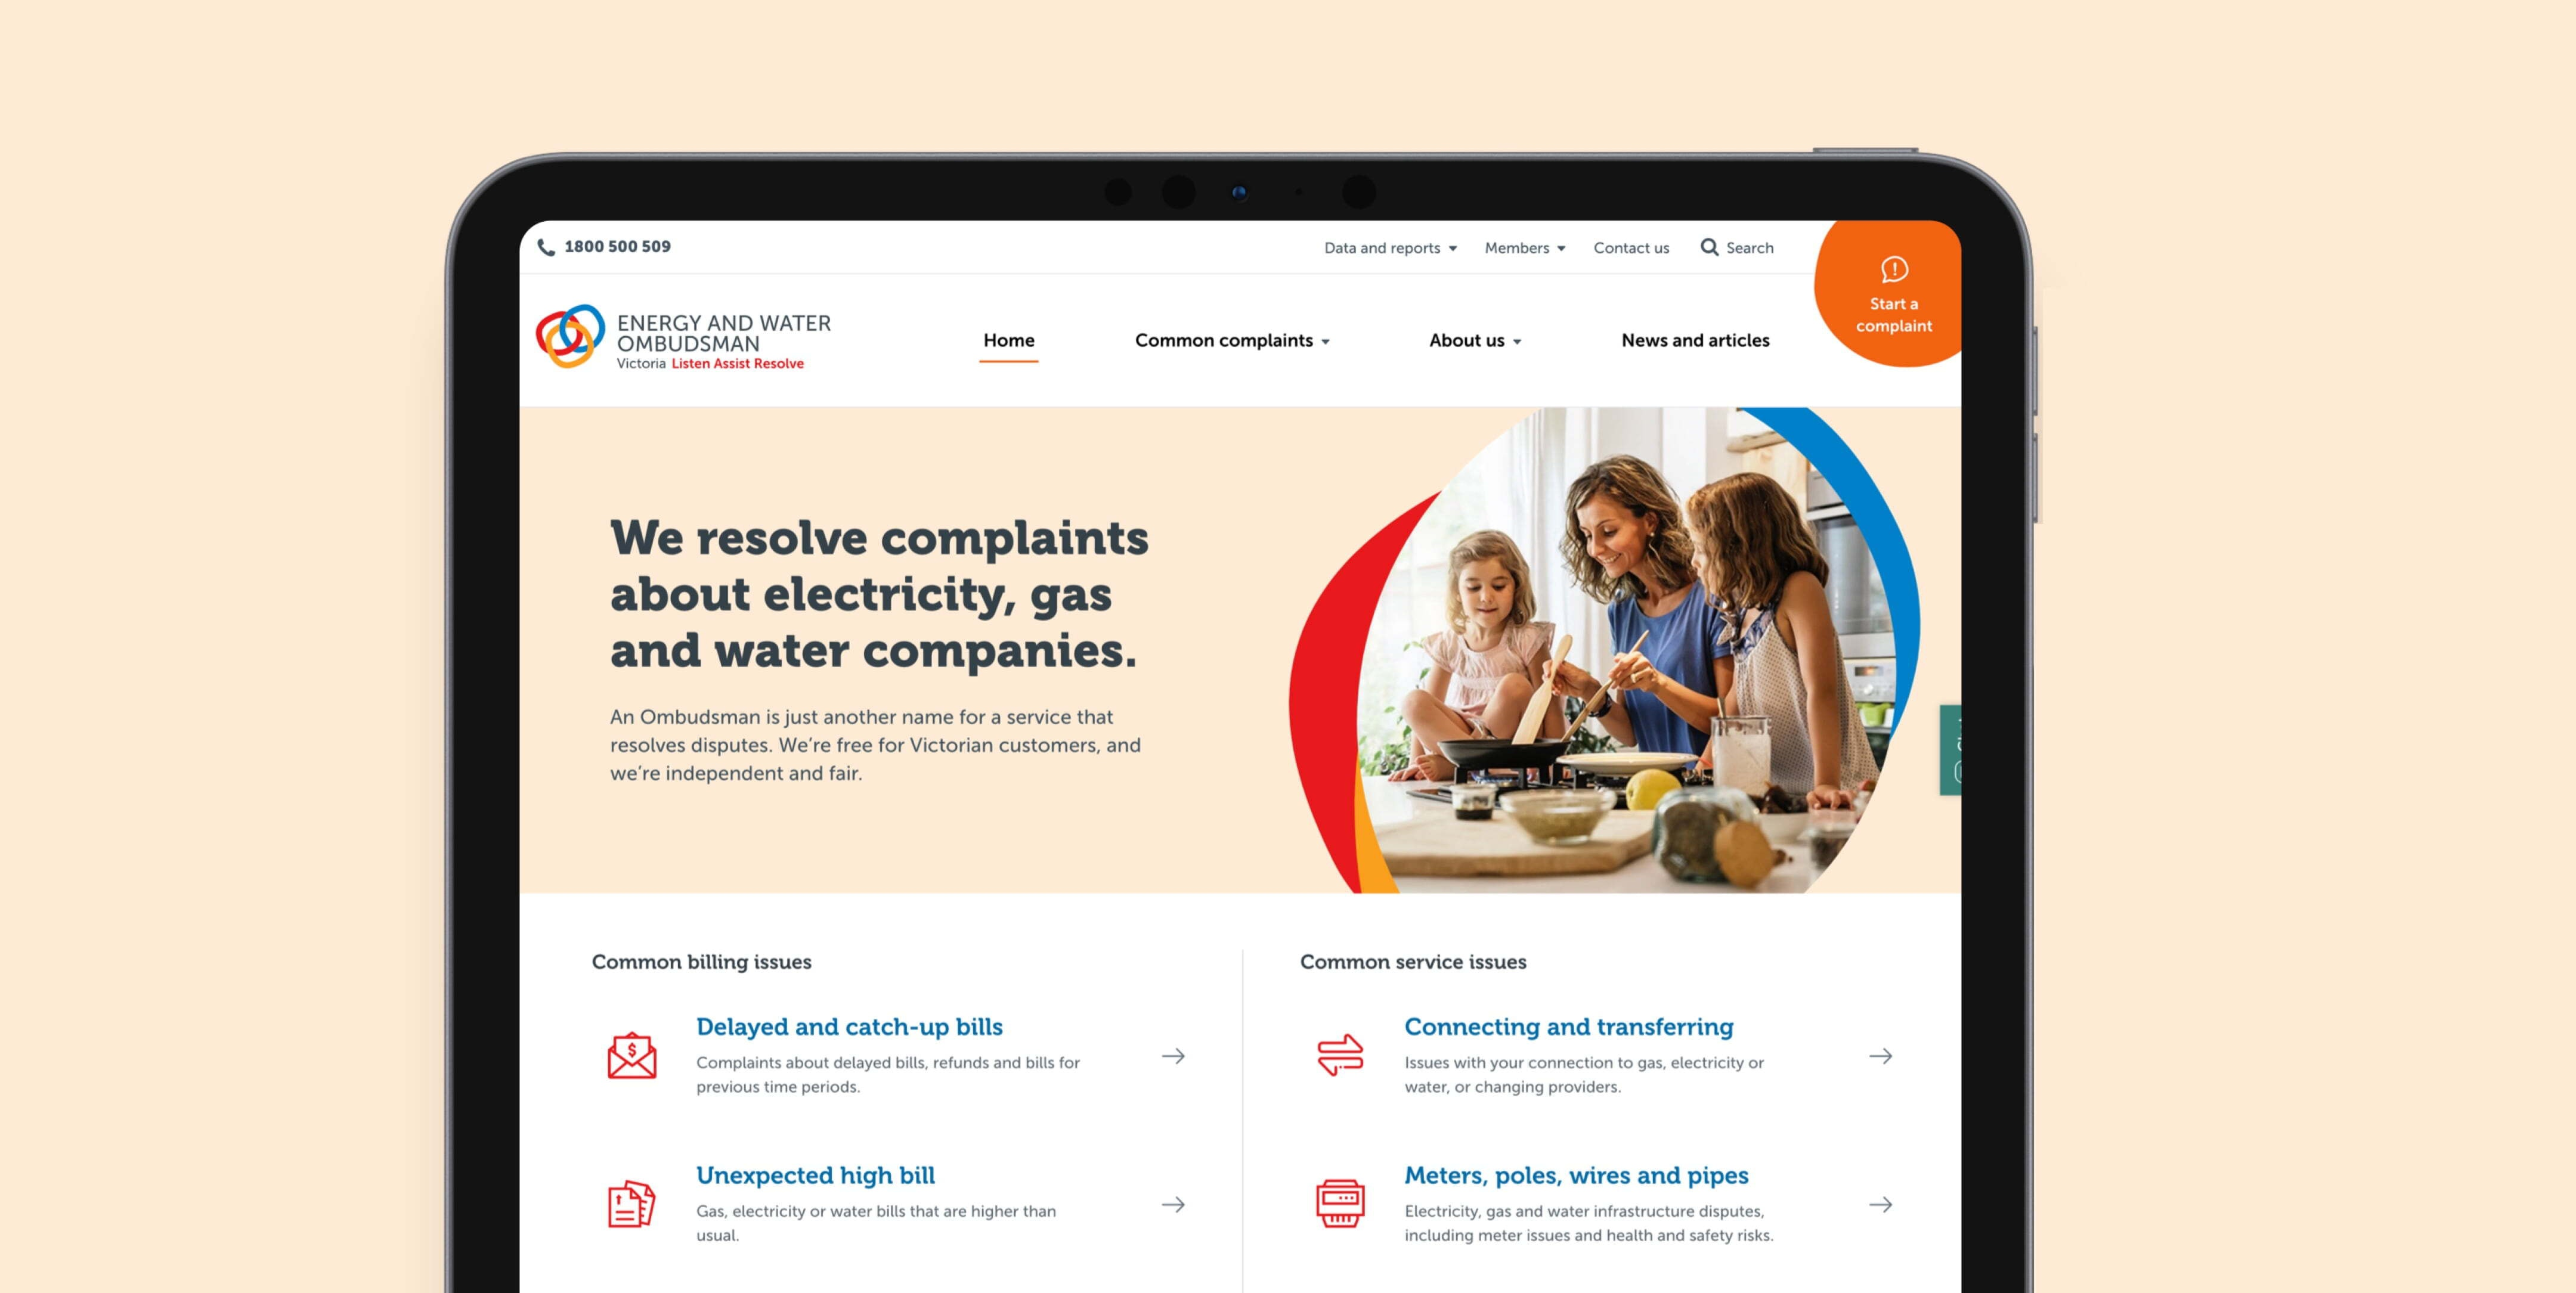 Ewov (Energy And Water Ombudsman Victoria) home page